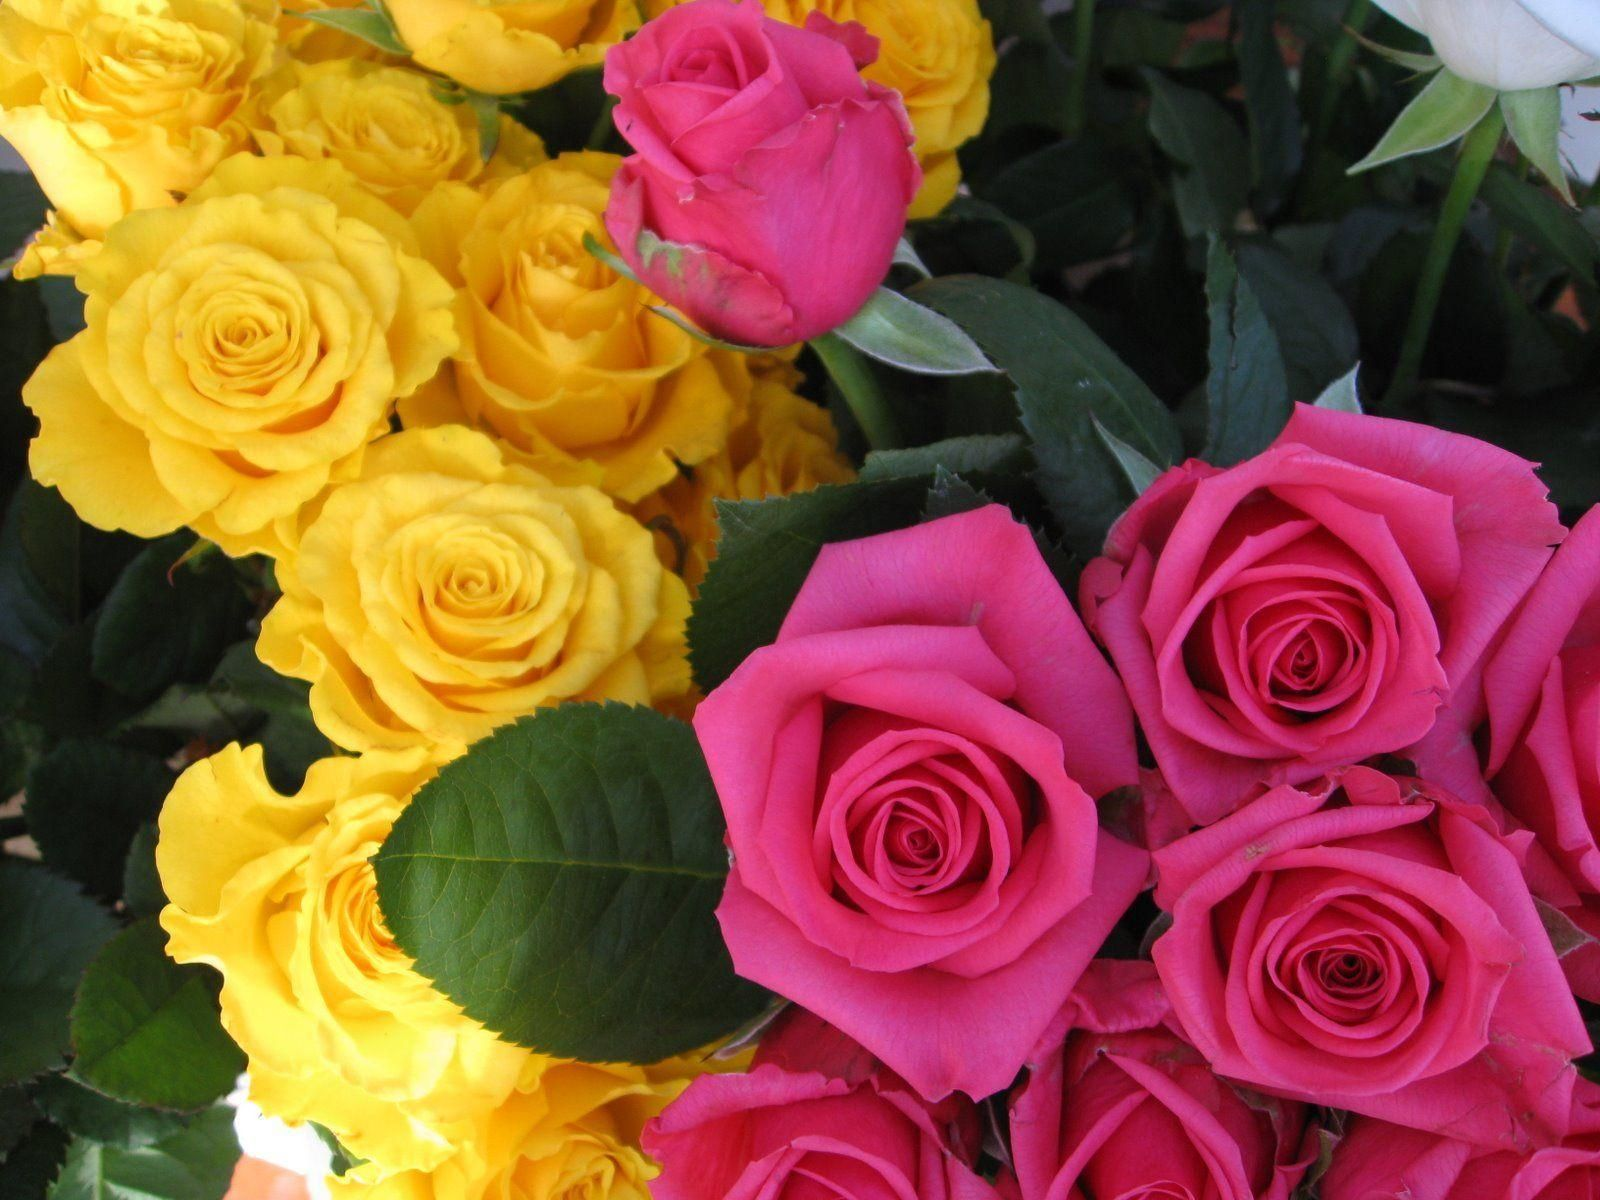 Pictures Of Roses Yellow Rose Flower Wallpapers Wallpaper Cave Birthday Flowers Bouquet Yellow Rose Flower Rose Flower Wallpaper